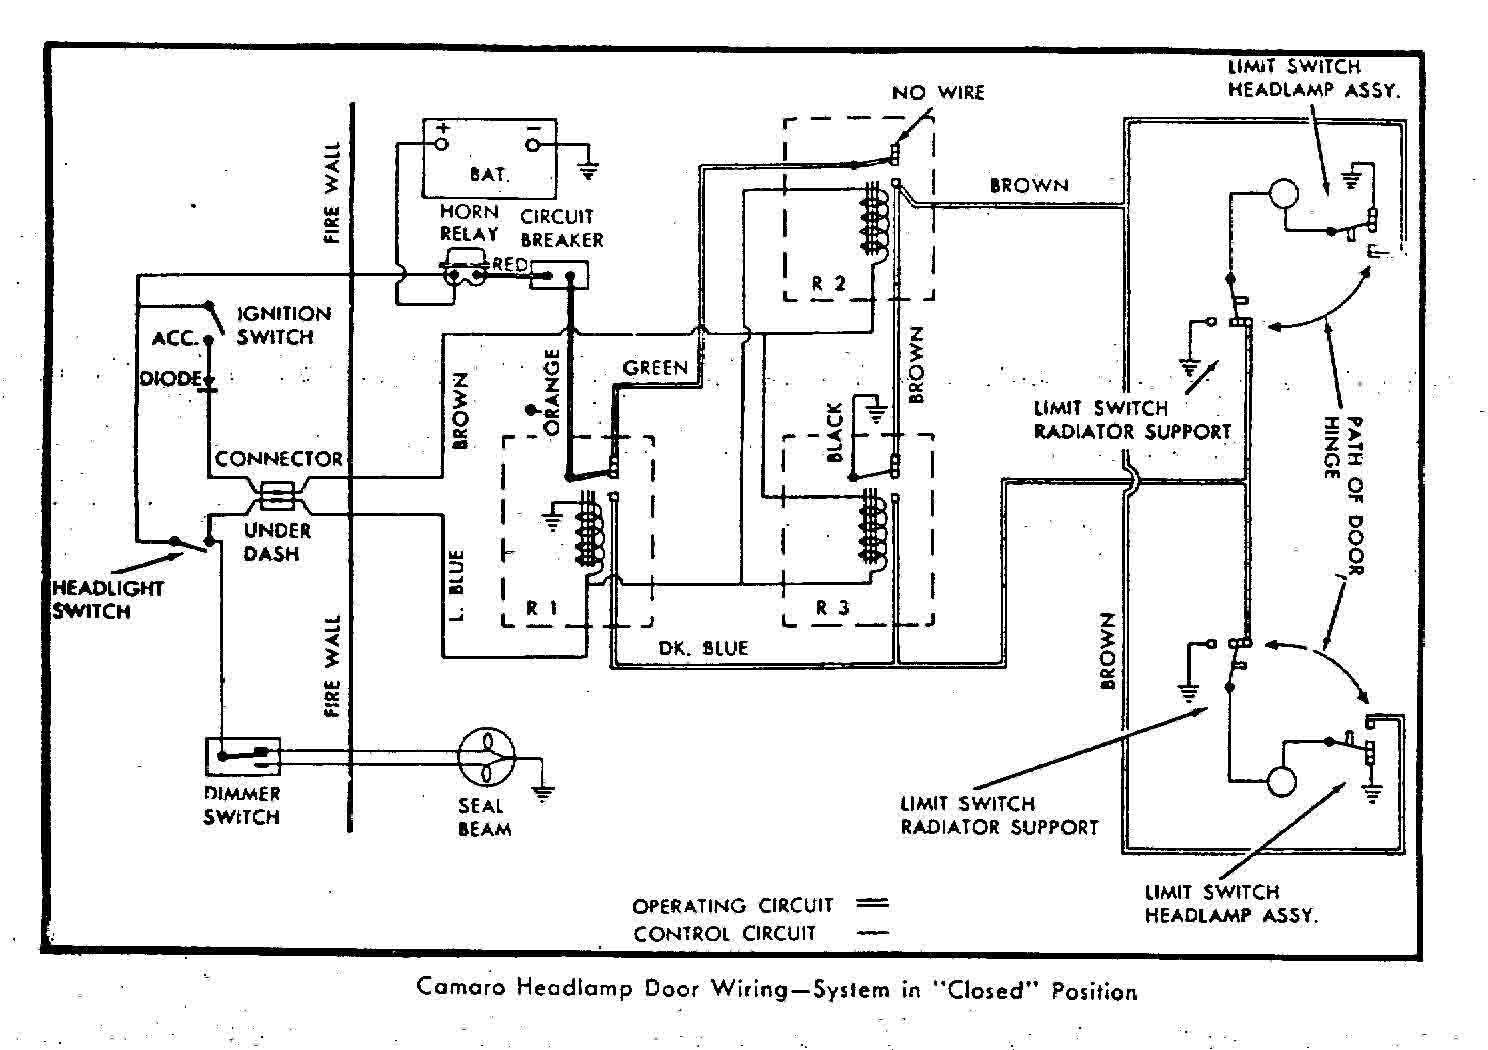 hight resolution of camaro engine diagram schematic diagram database 1968 camaro engine diagram wiring diagram expert 2010 camaro v6